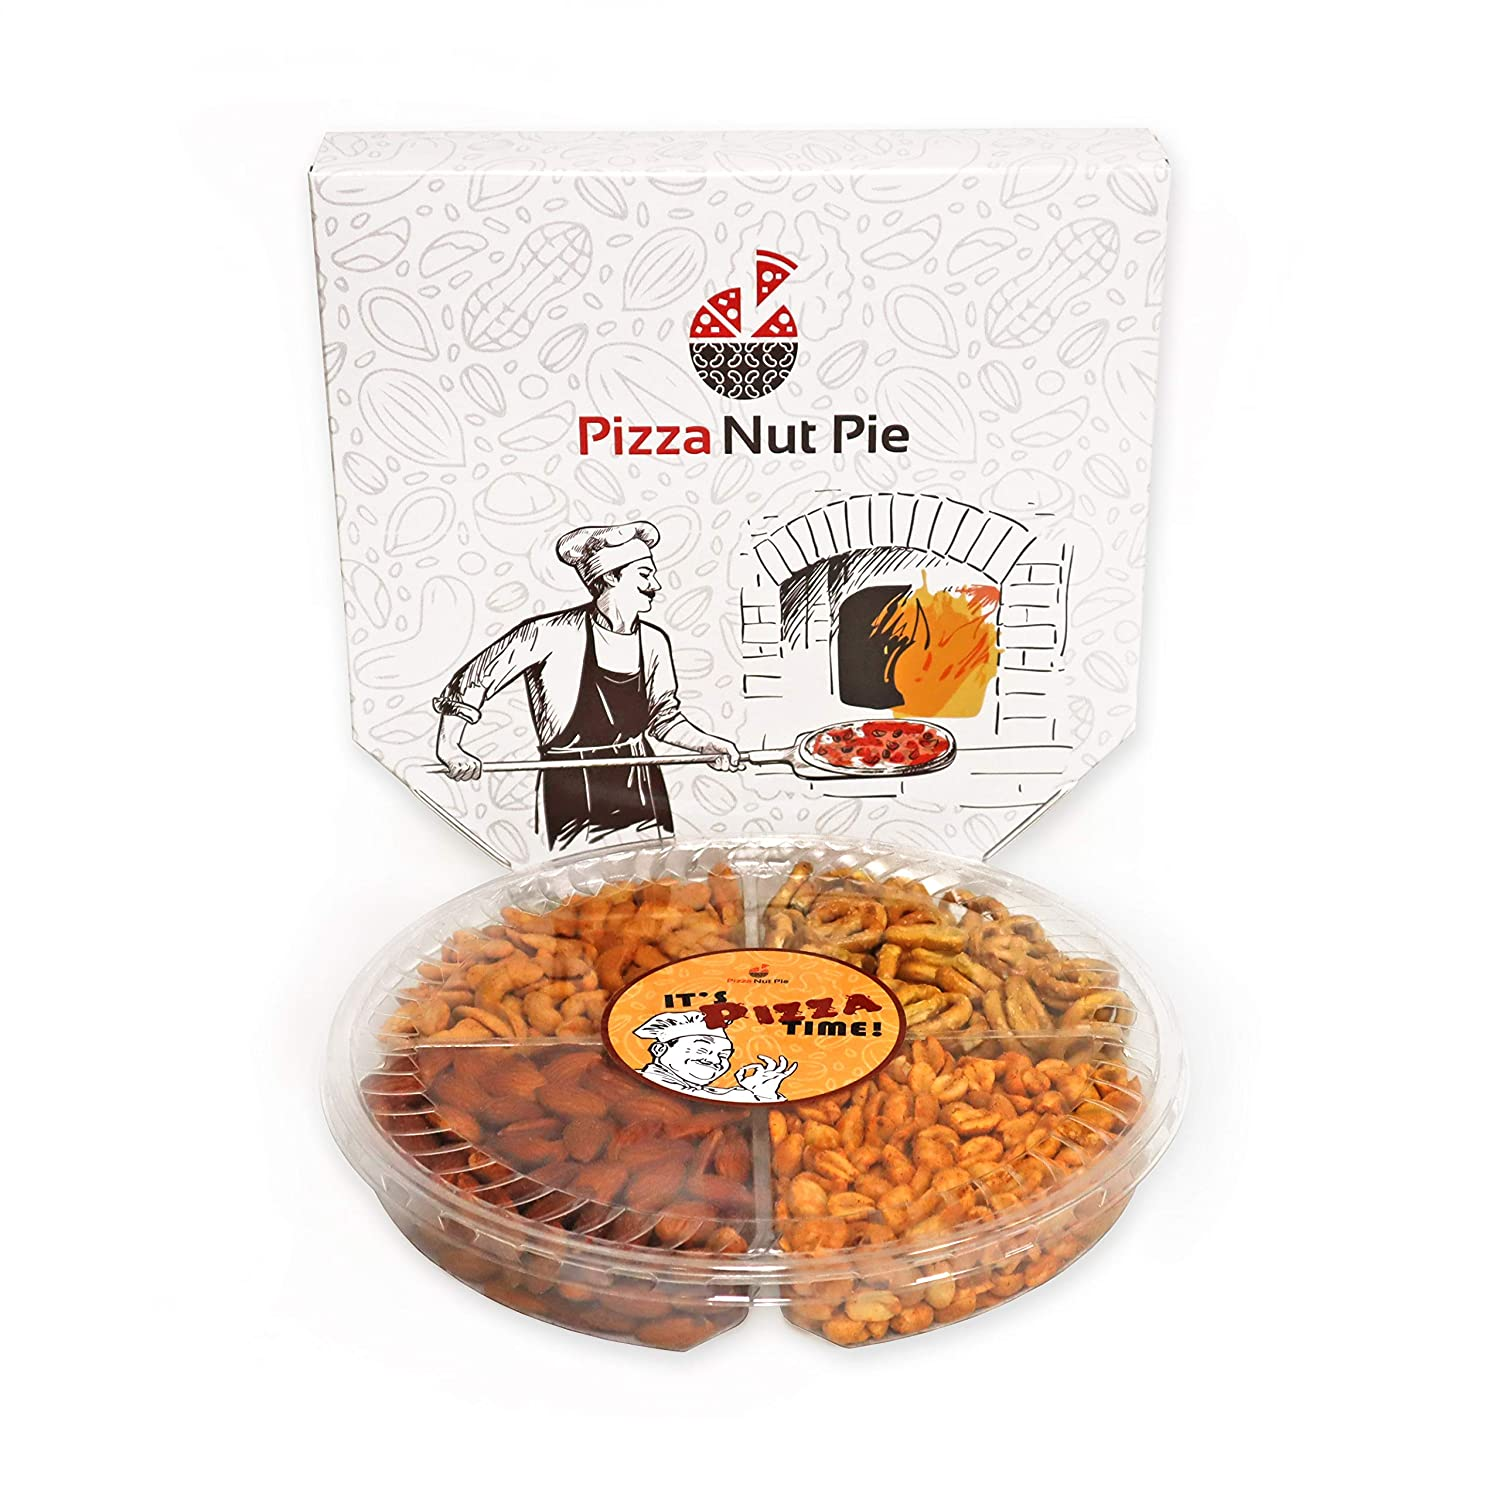 Pizza Nut Pie - Holiday Nuts Gift Basket – Mother's Day, Father's Day, Birthday, Party, Gifts for Him, Her, Summer Snack- Pretzels & Pizza Flavored Cashews, Almonds, & Peanuts, Kosher